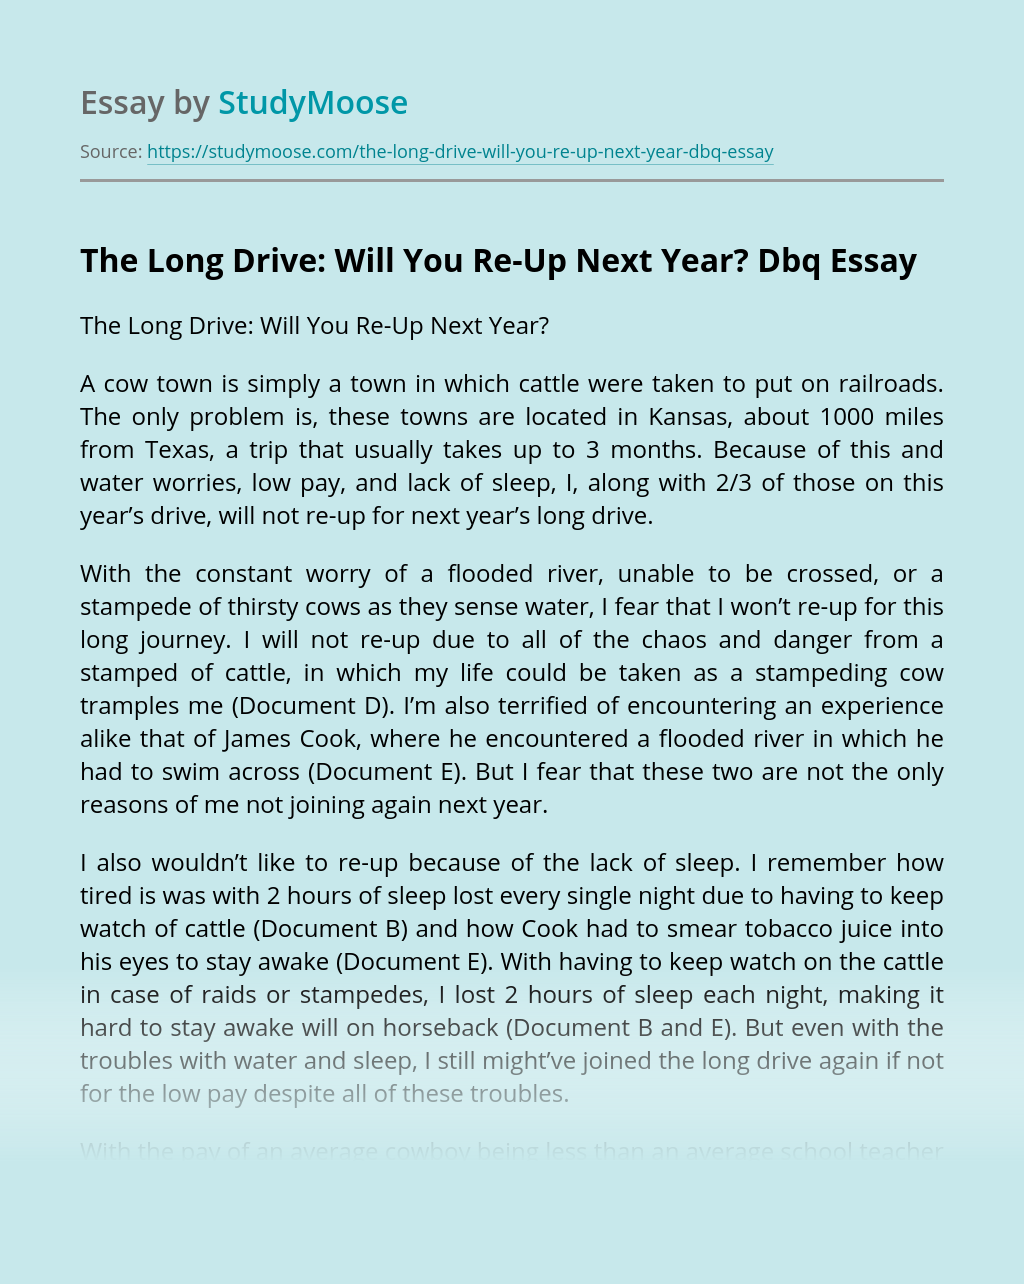 The Long Drive: Will You Re-Up Next Year? Dbq